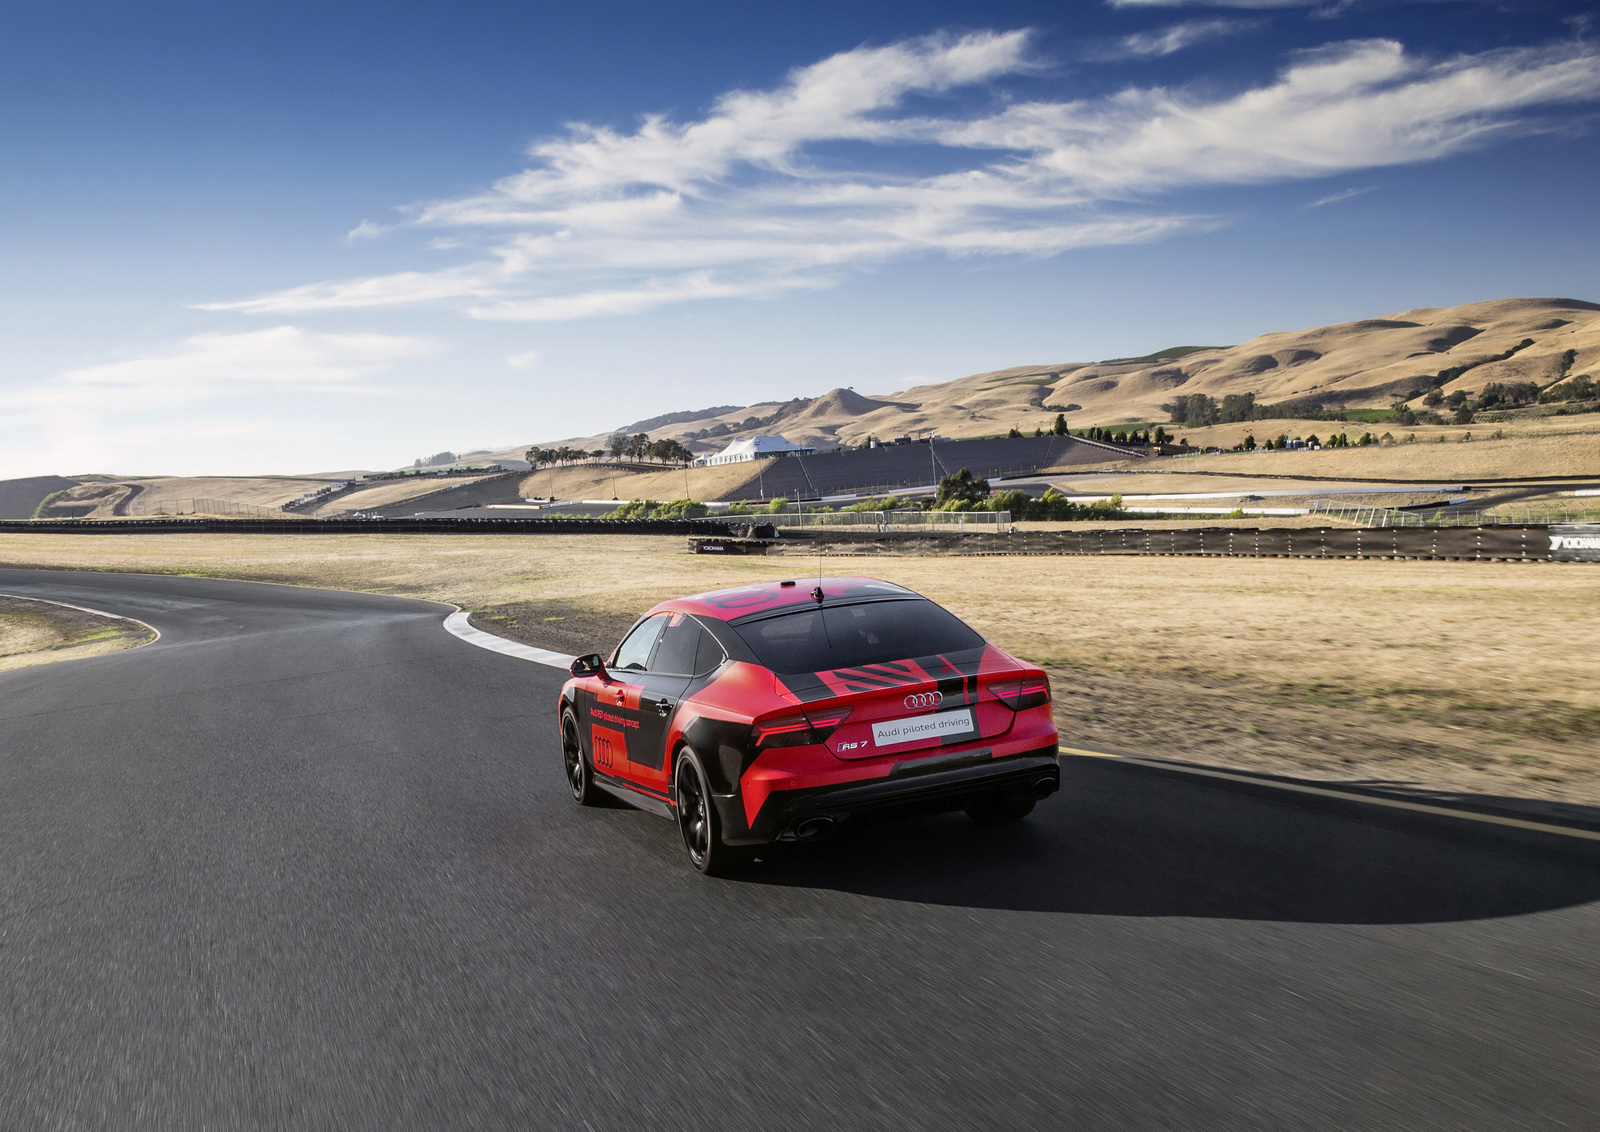 Des nouvelles de la RS7 Piloted Driving - Photo n°10